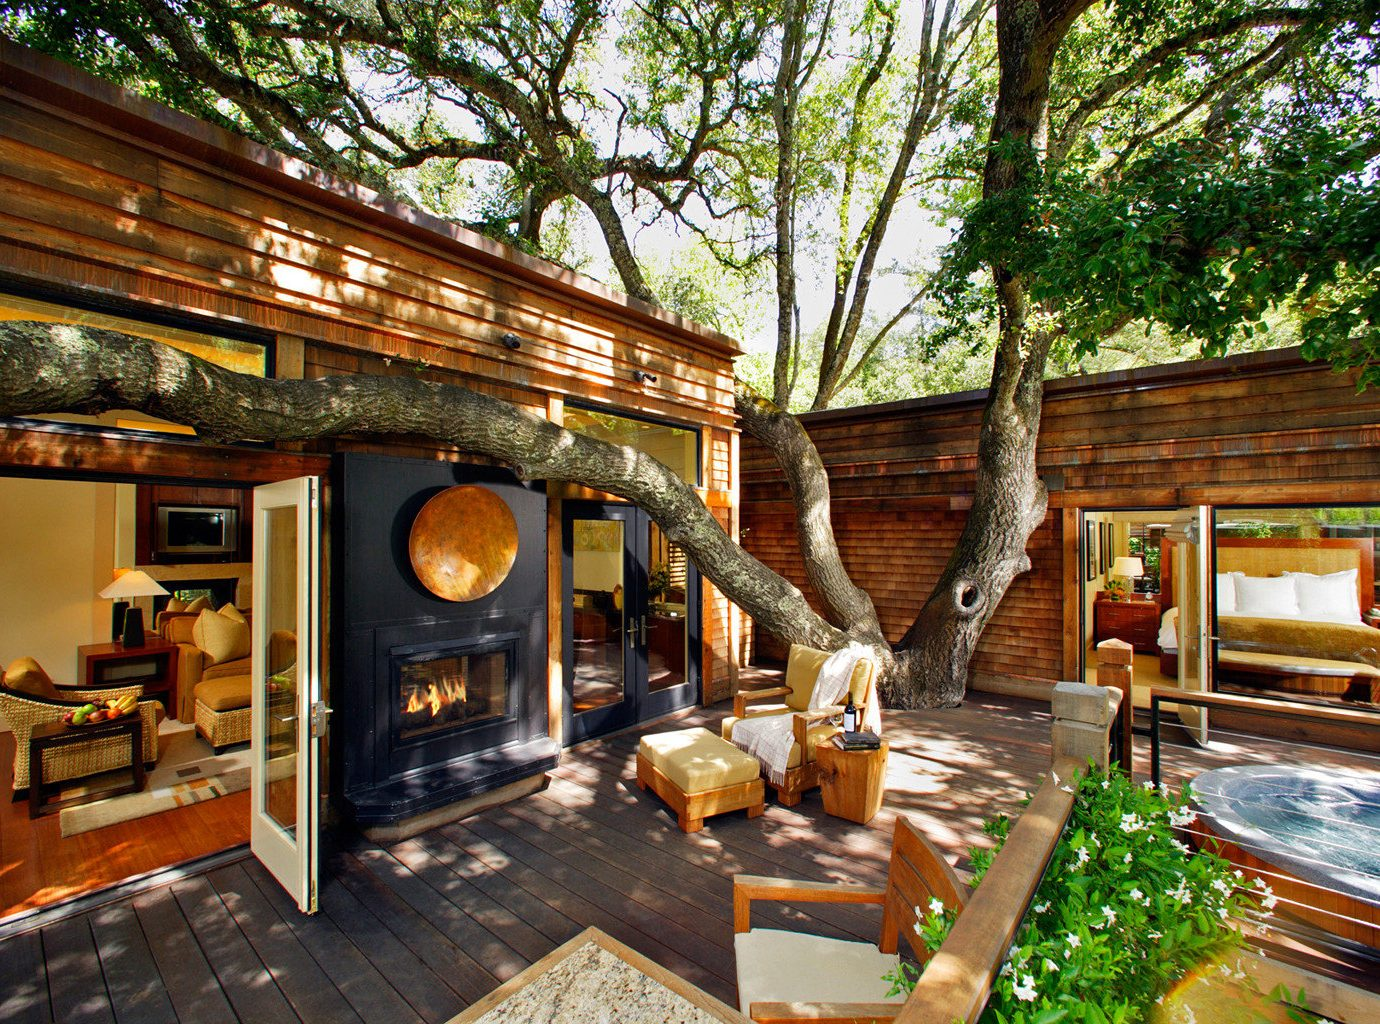 Eco Grounds Luxury Outdoors Ranch Romance Romantic Rustic Suite Wellness tree property building Resort house home restaurant log cabin cottage Villa hacienda mansion